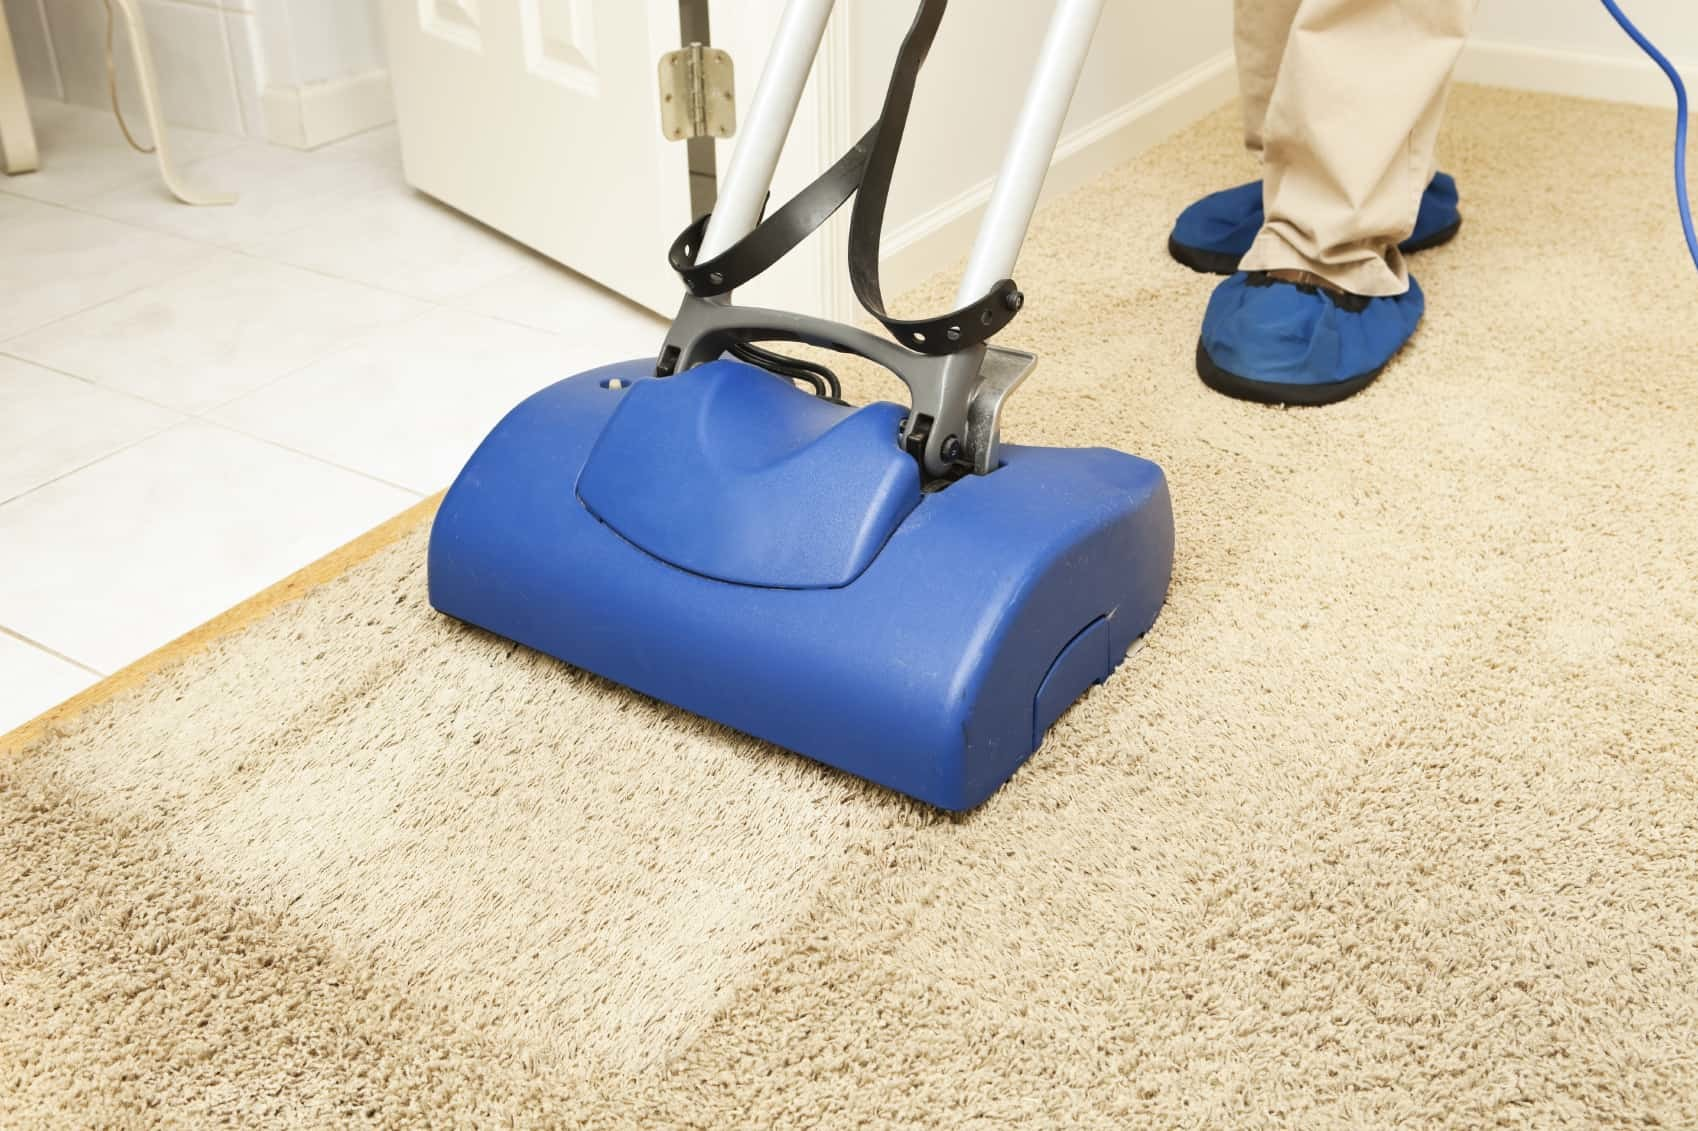 cleaning methods Get into a daily routine of office cleaning will help your organization provide a comfortable, healthy and friendly working environment.